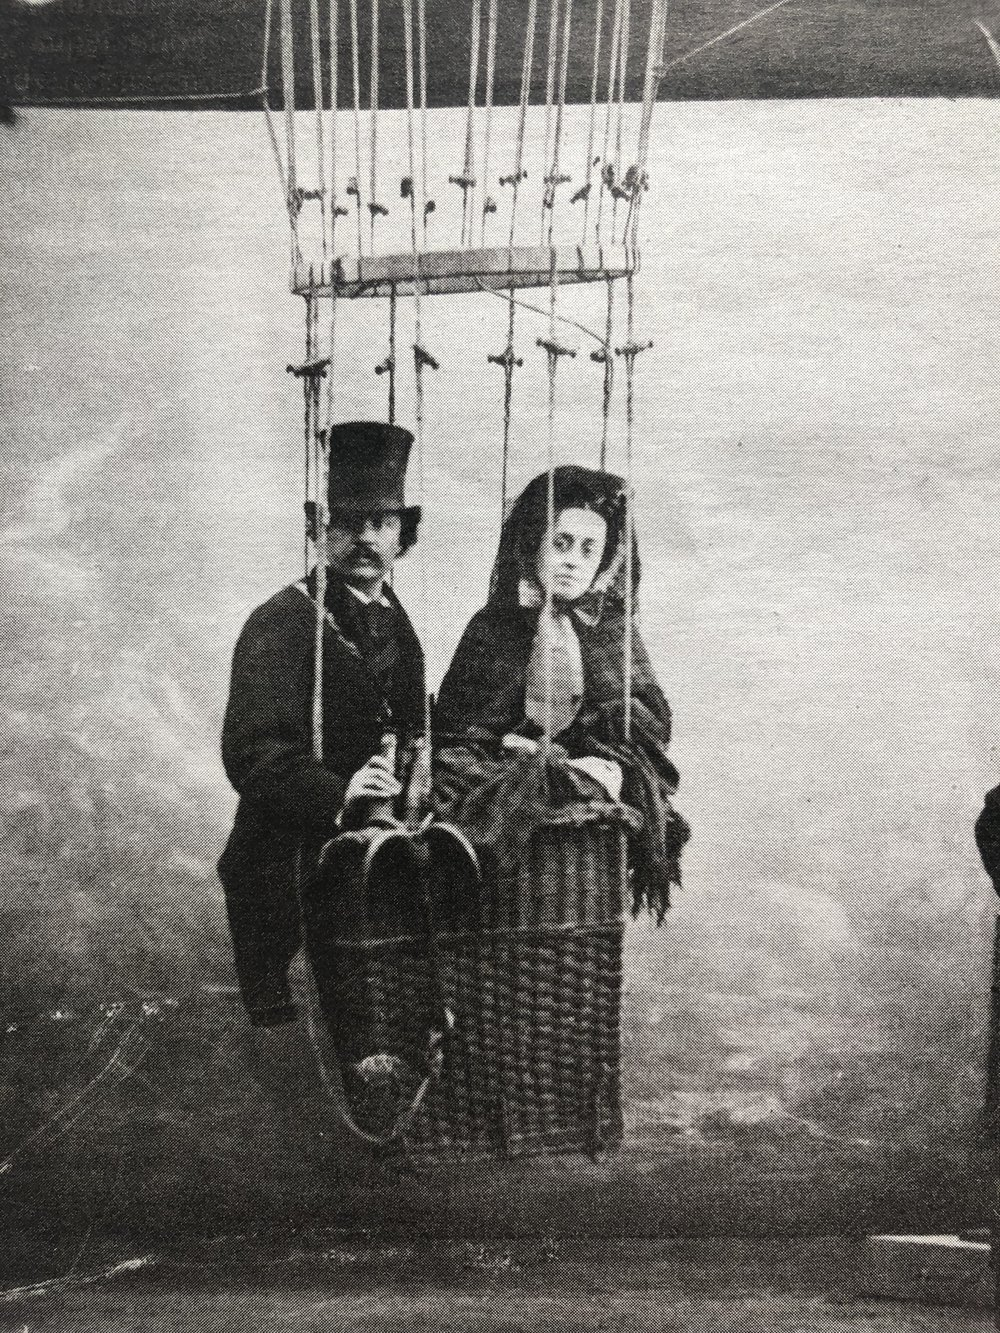 Felix Nadar and his wife, Ernestine, in a baloon, circa 1865